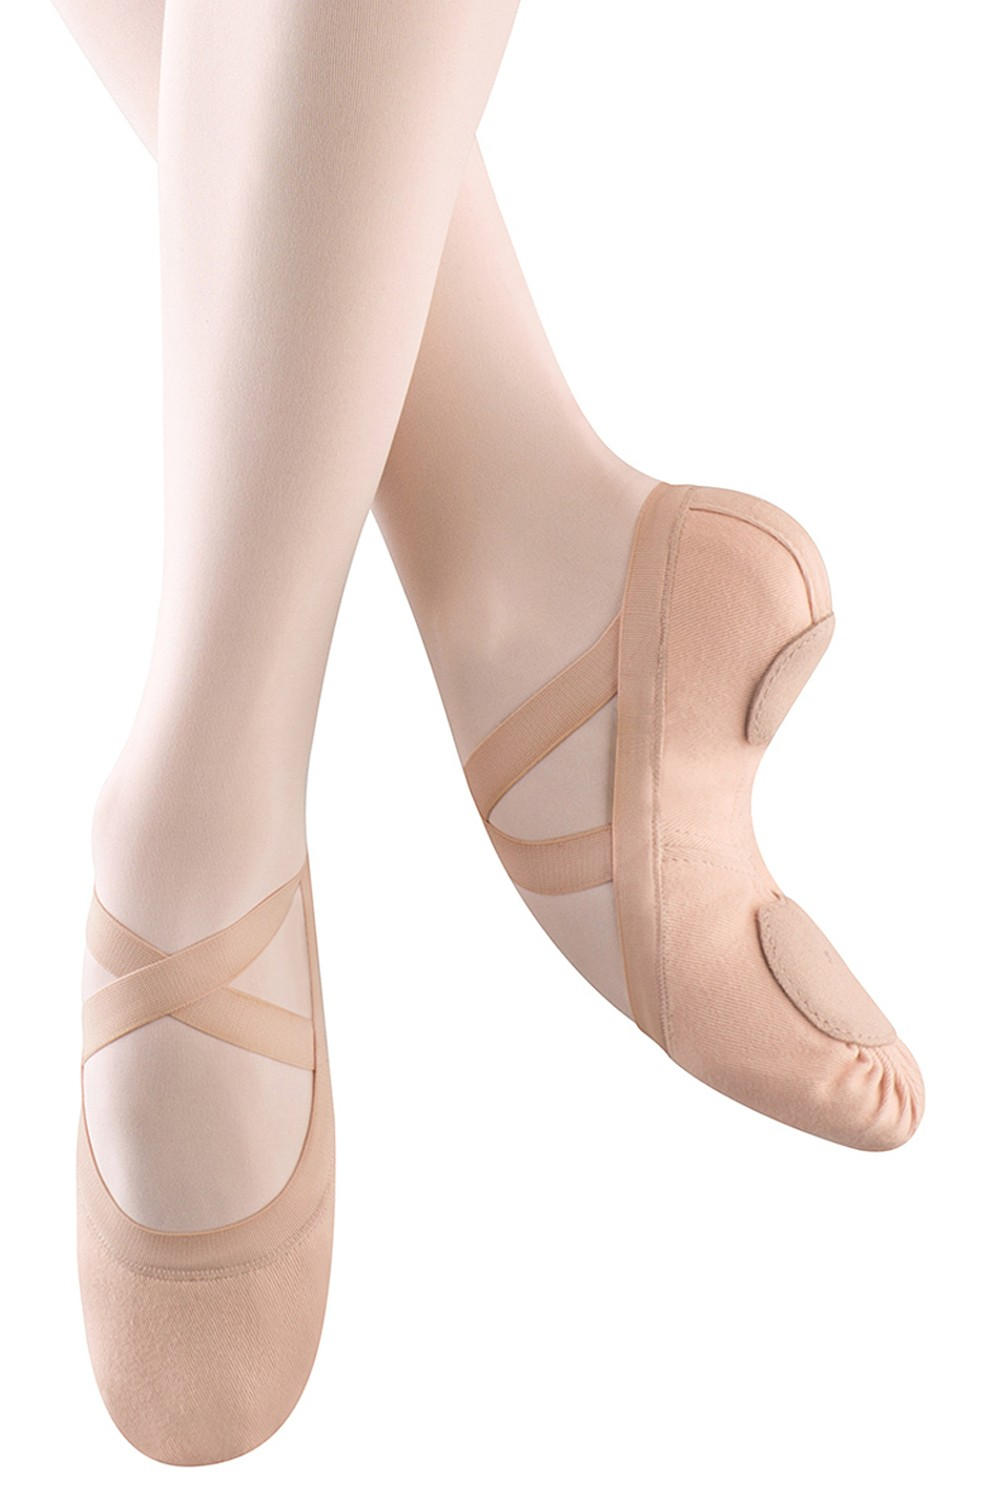 Starlite Flexi Pink Split Sole Sole Leather Ballet Shoes 3L nwAOZPW2Tr